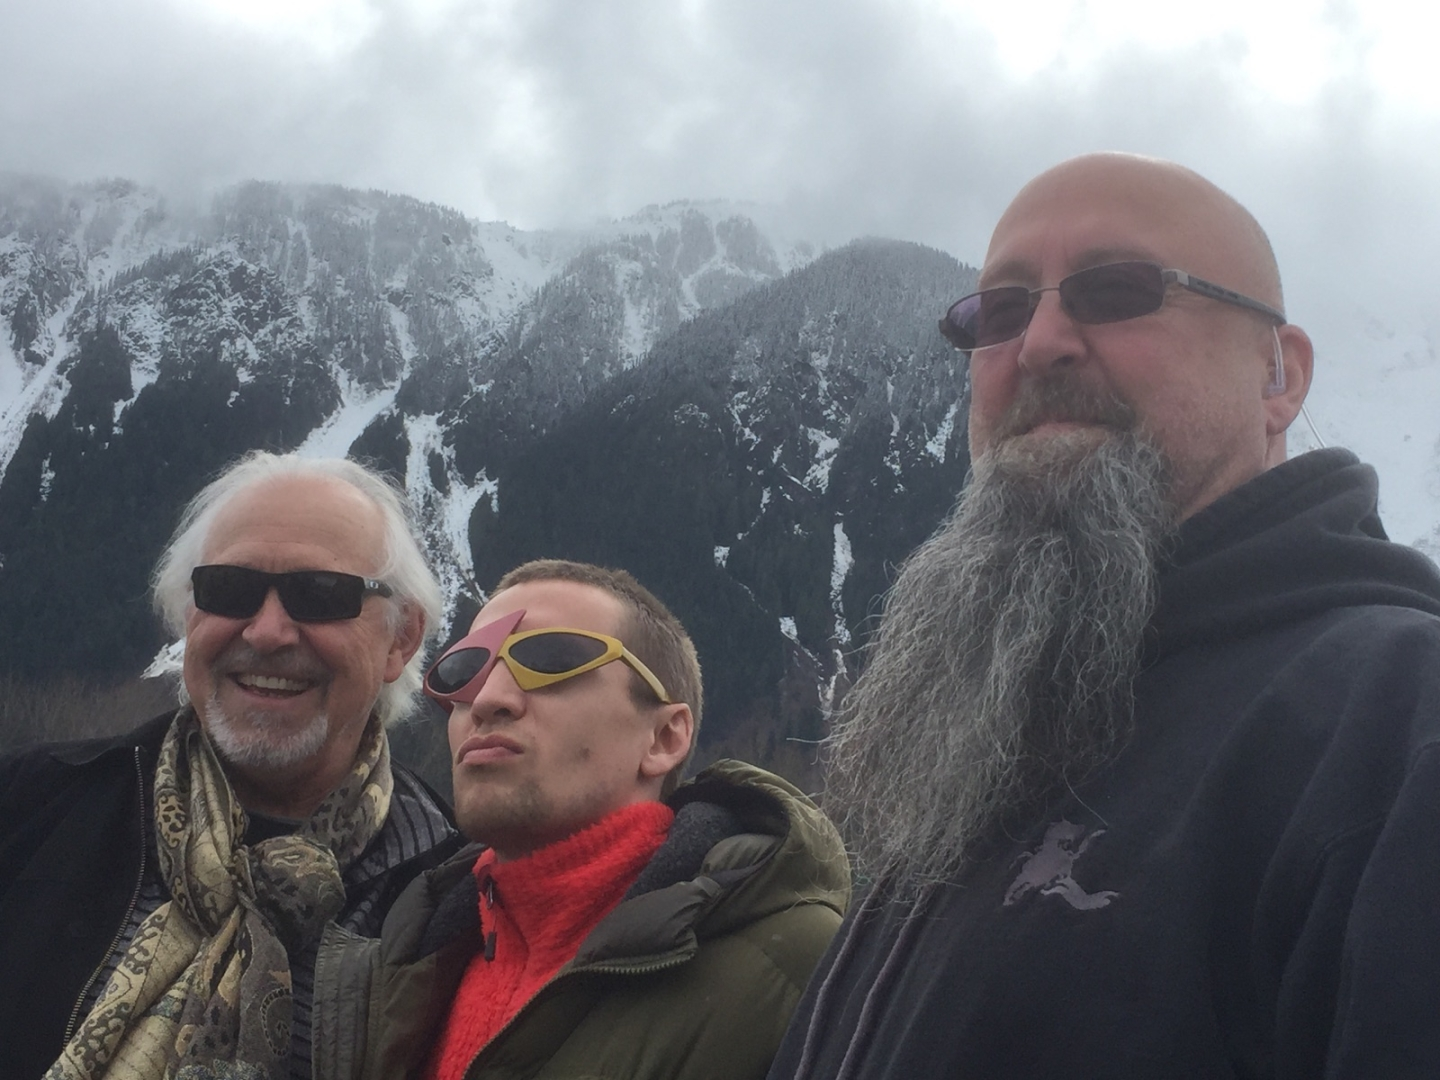 Dead Cold set with Rudy and Les, Pemberton BC